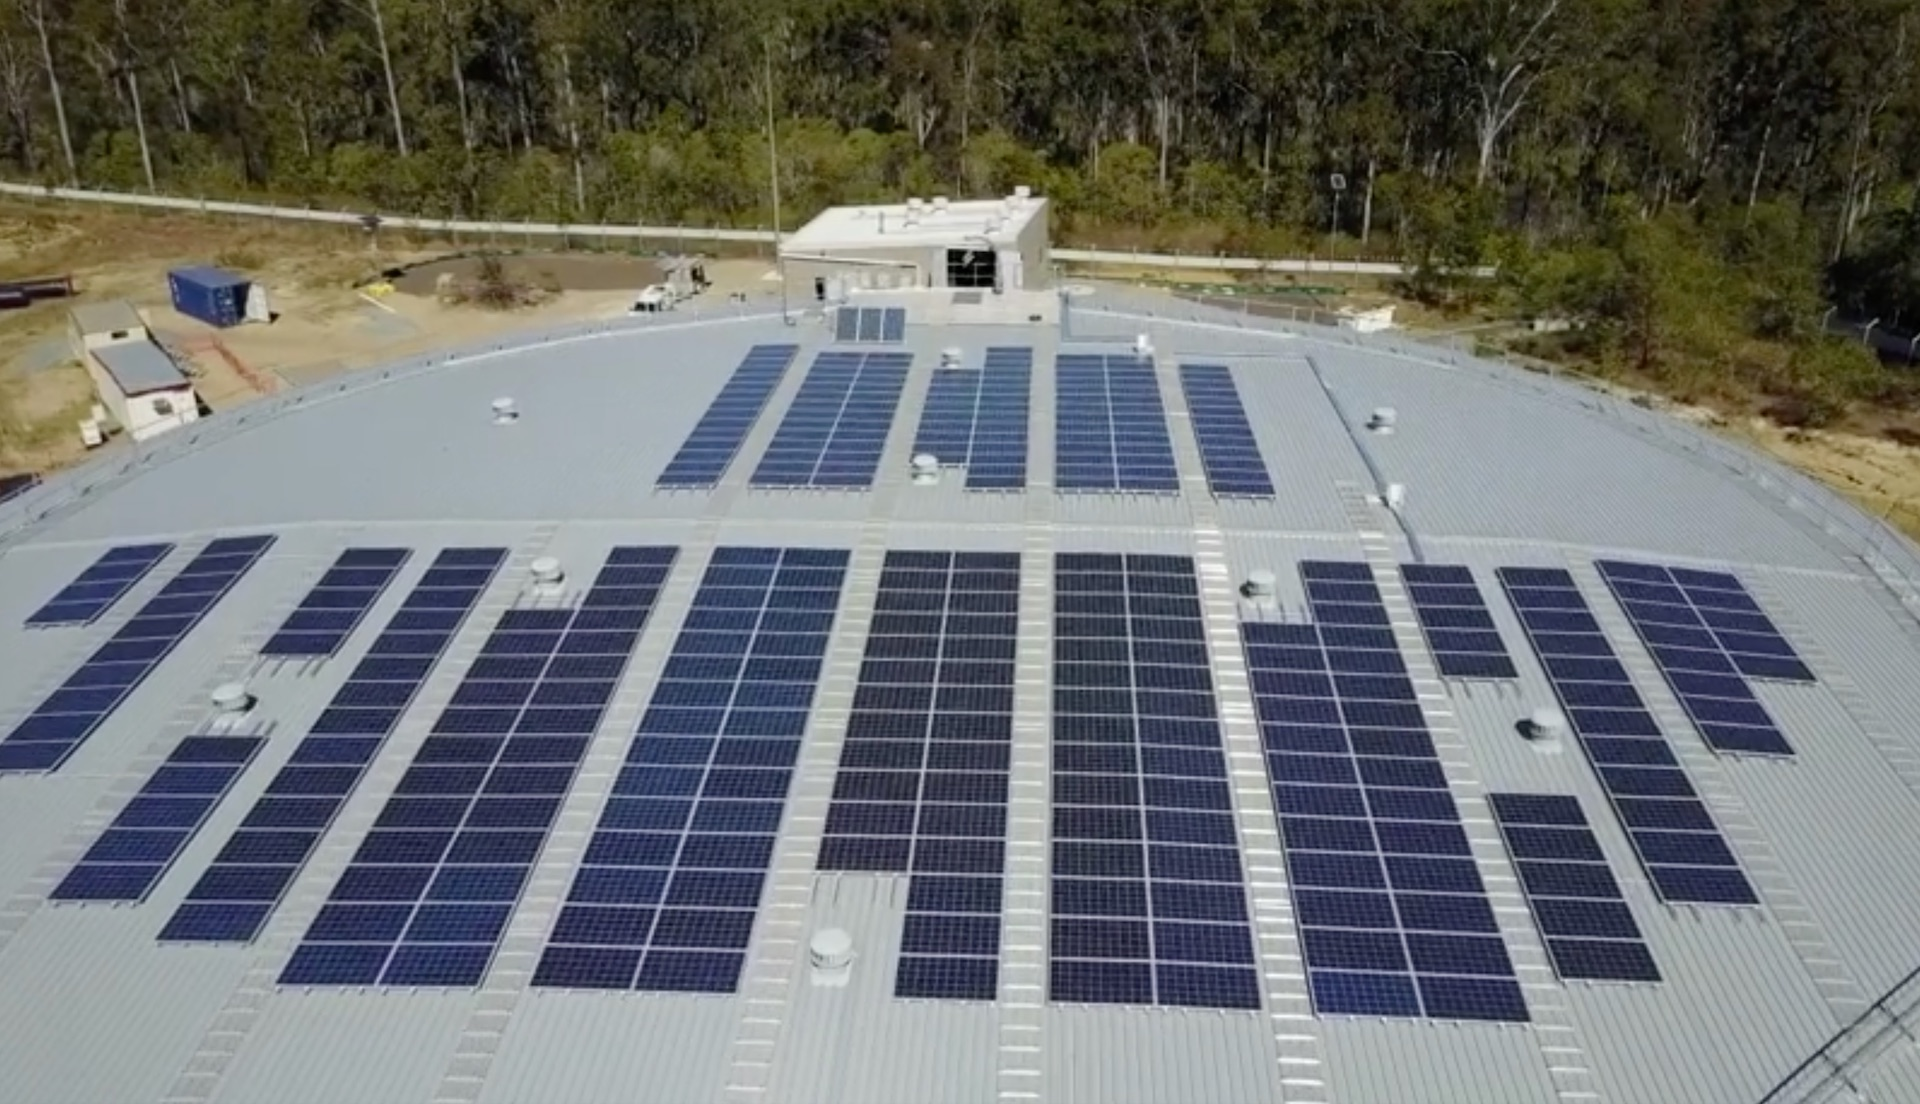 tesla-powerpack-queensland-australia-solar-panels-water-treatment